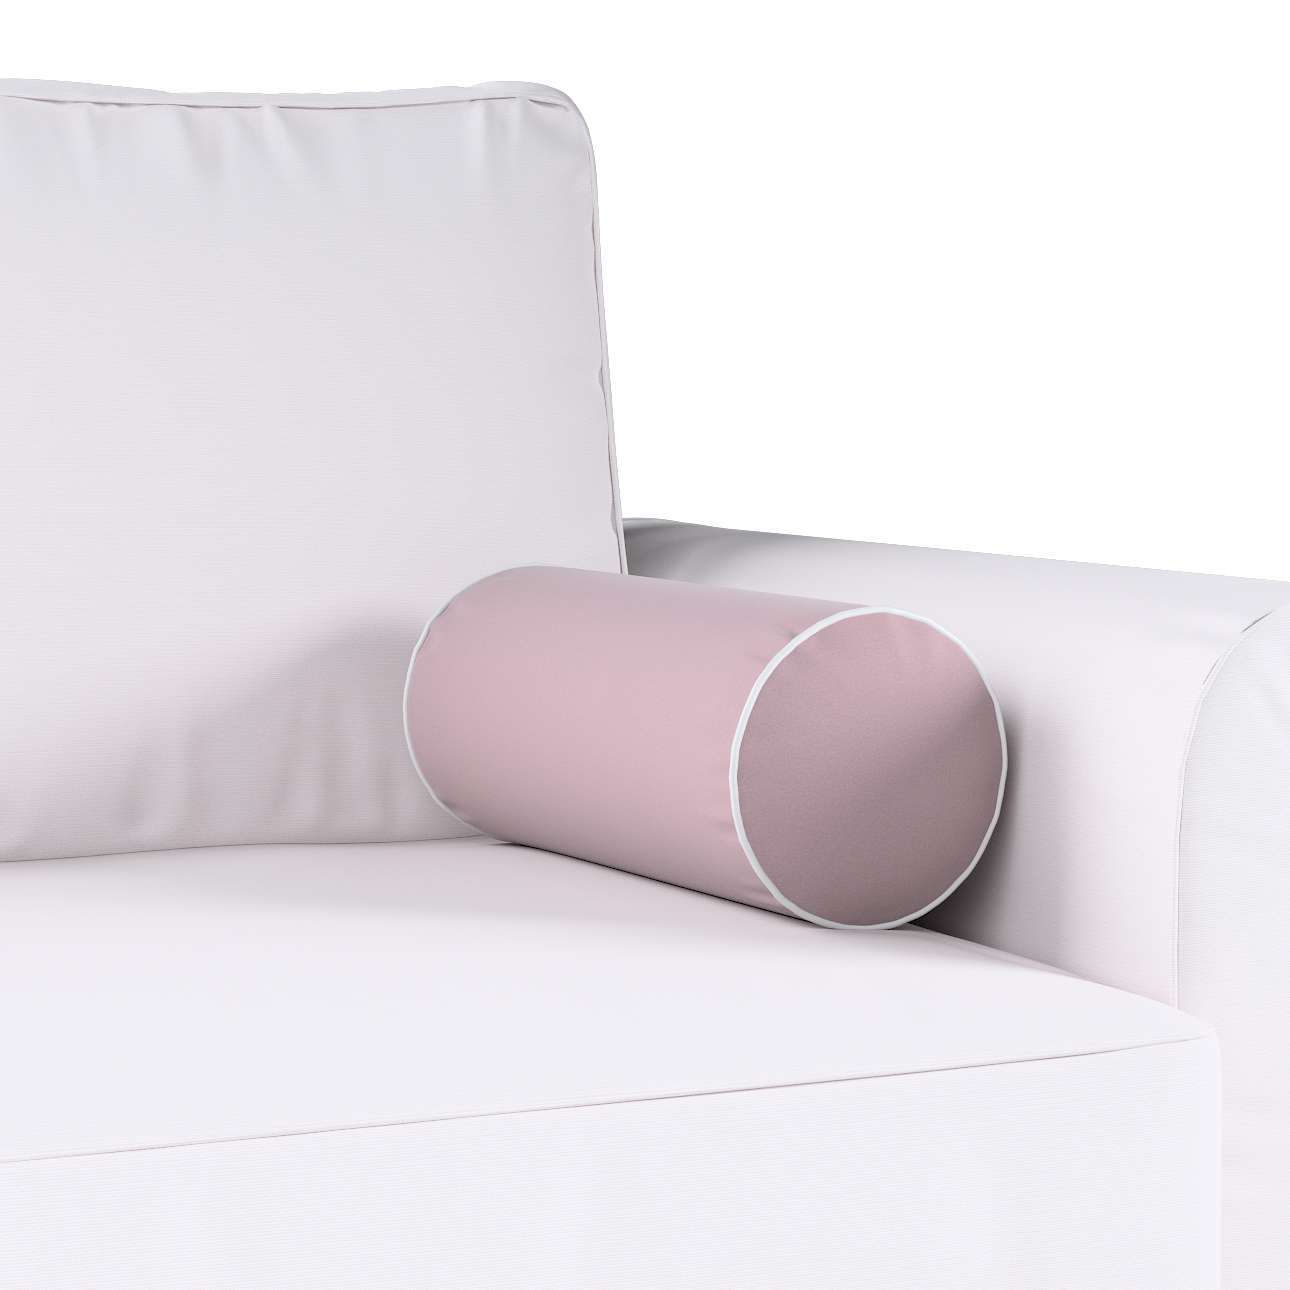 Velvety bolster with piping in collection Velvet, fabric: 704-14